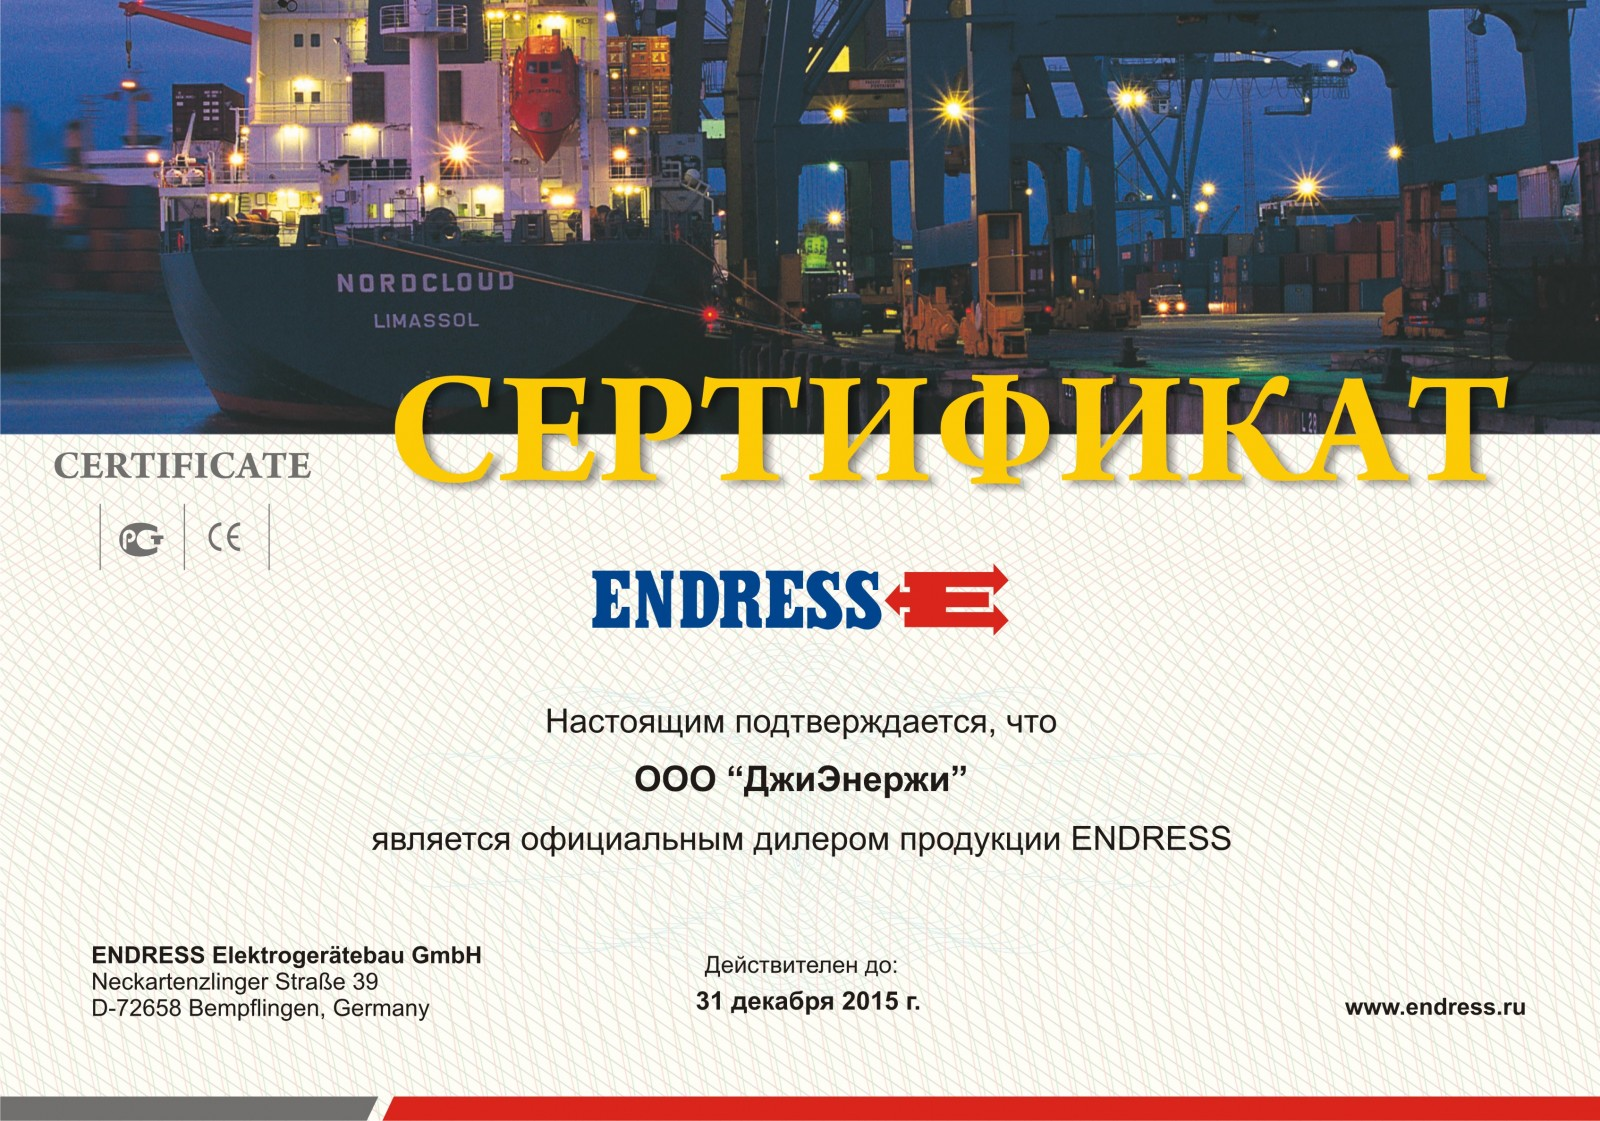 Endress certificate